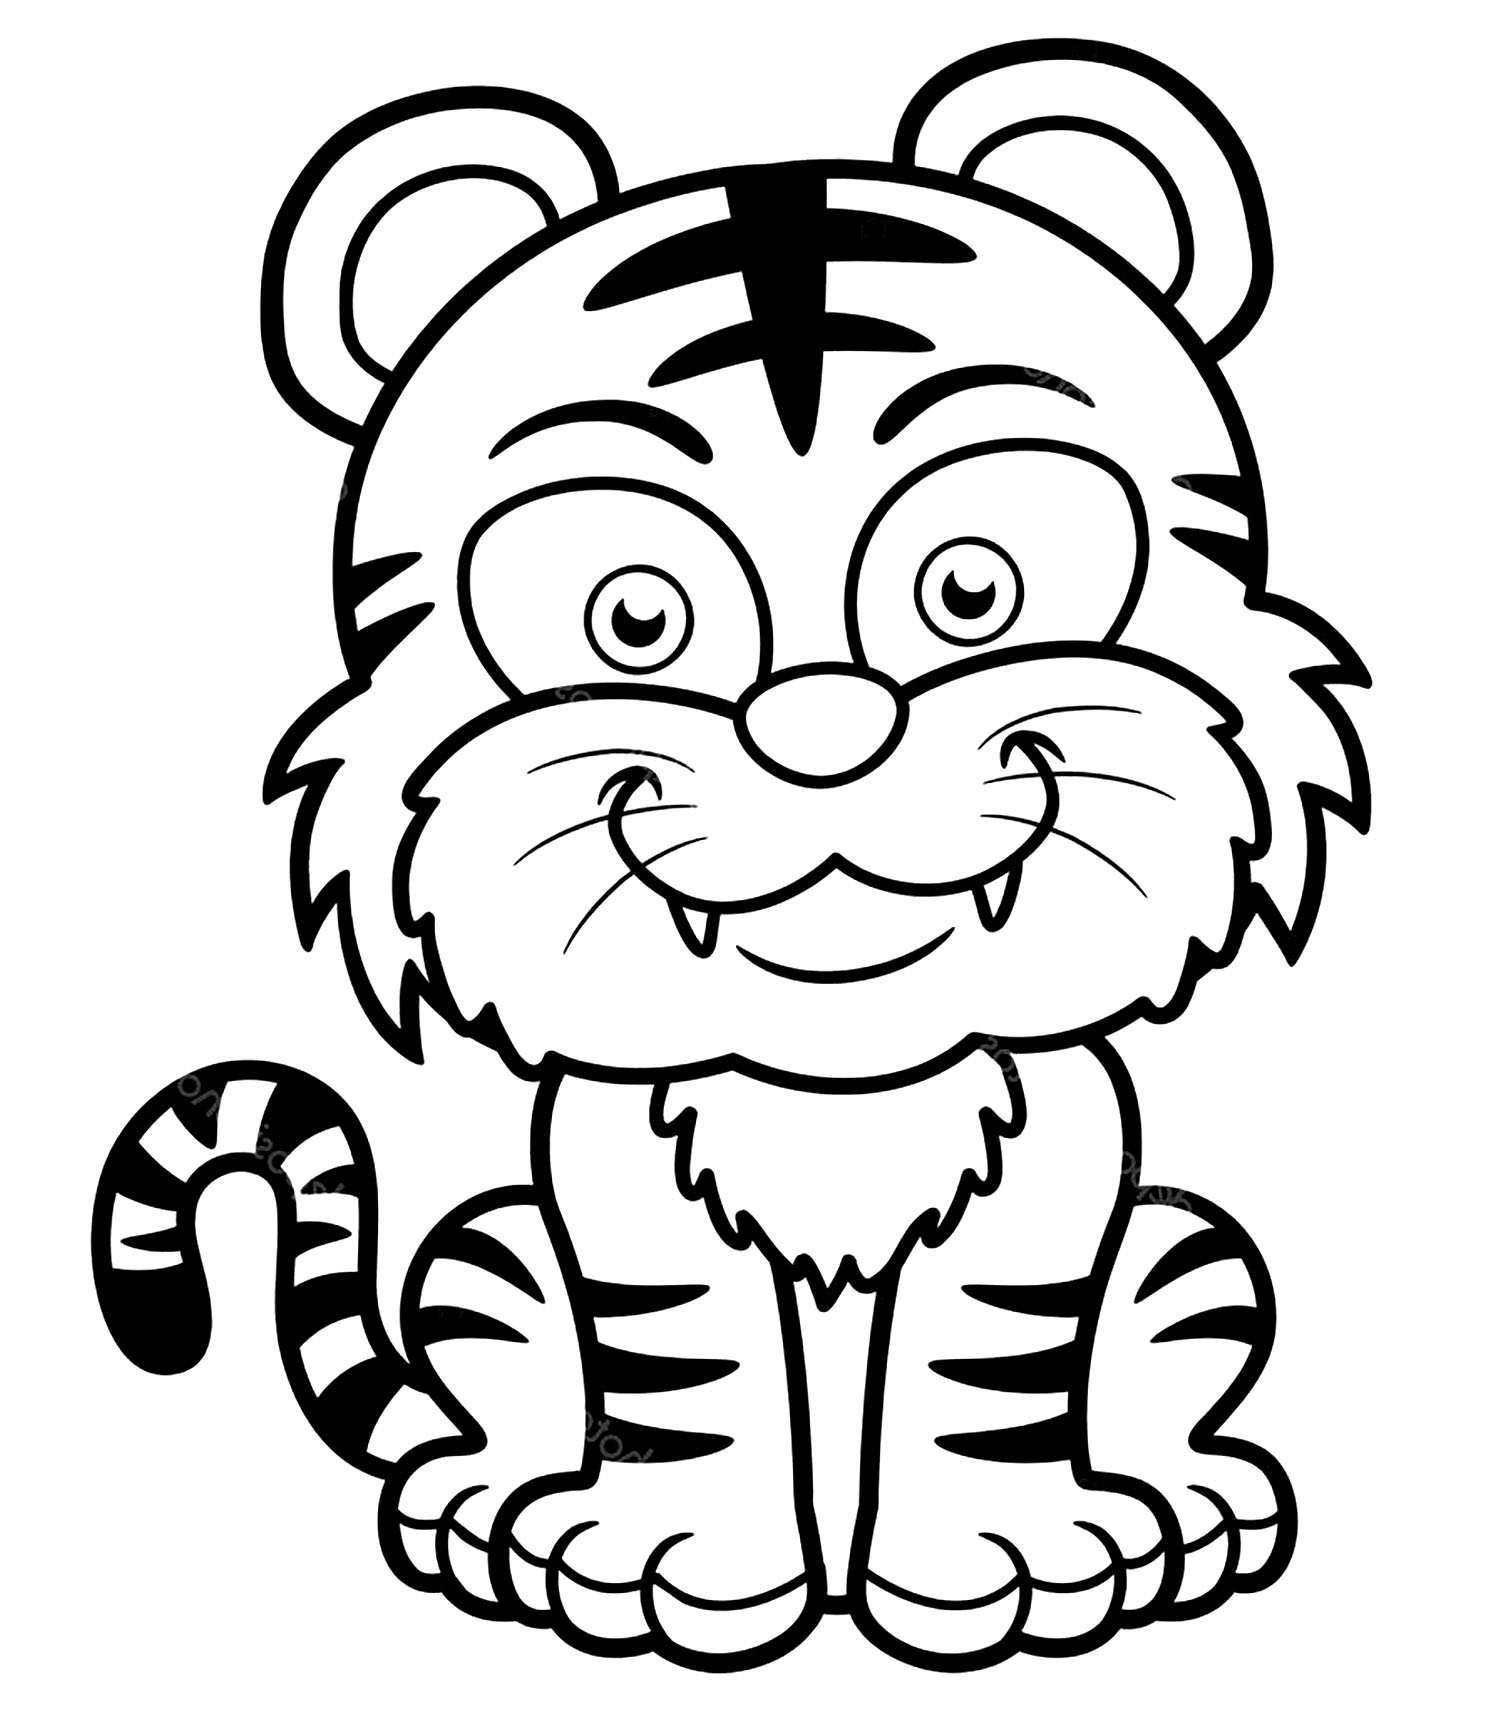 tigers free to color for children kids coloring sheet coding crayons wholesale suger coloring pages Kids Coloring Page